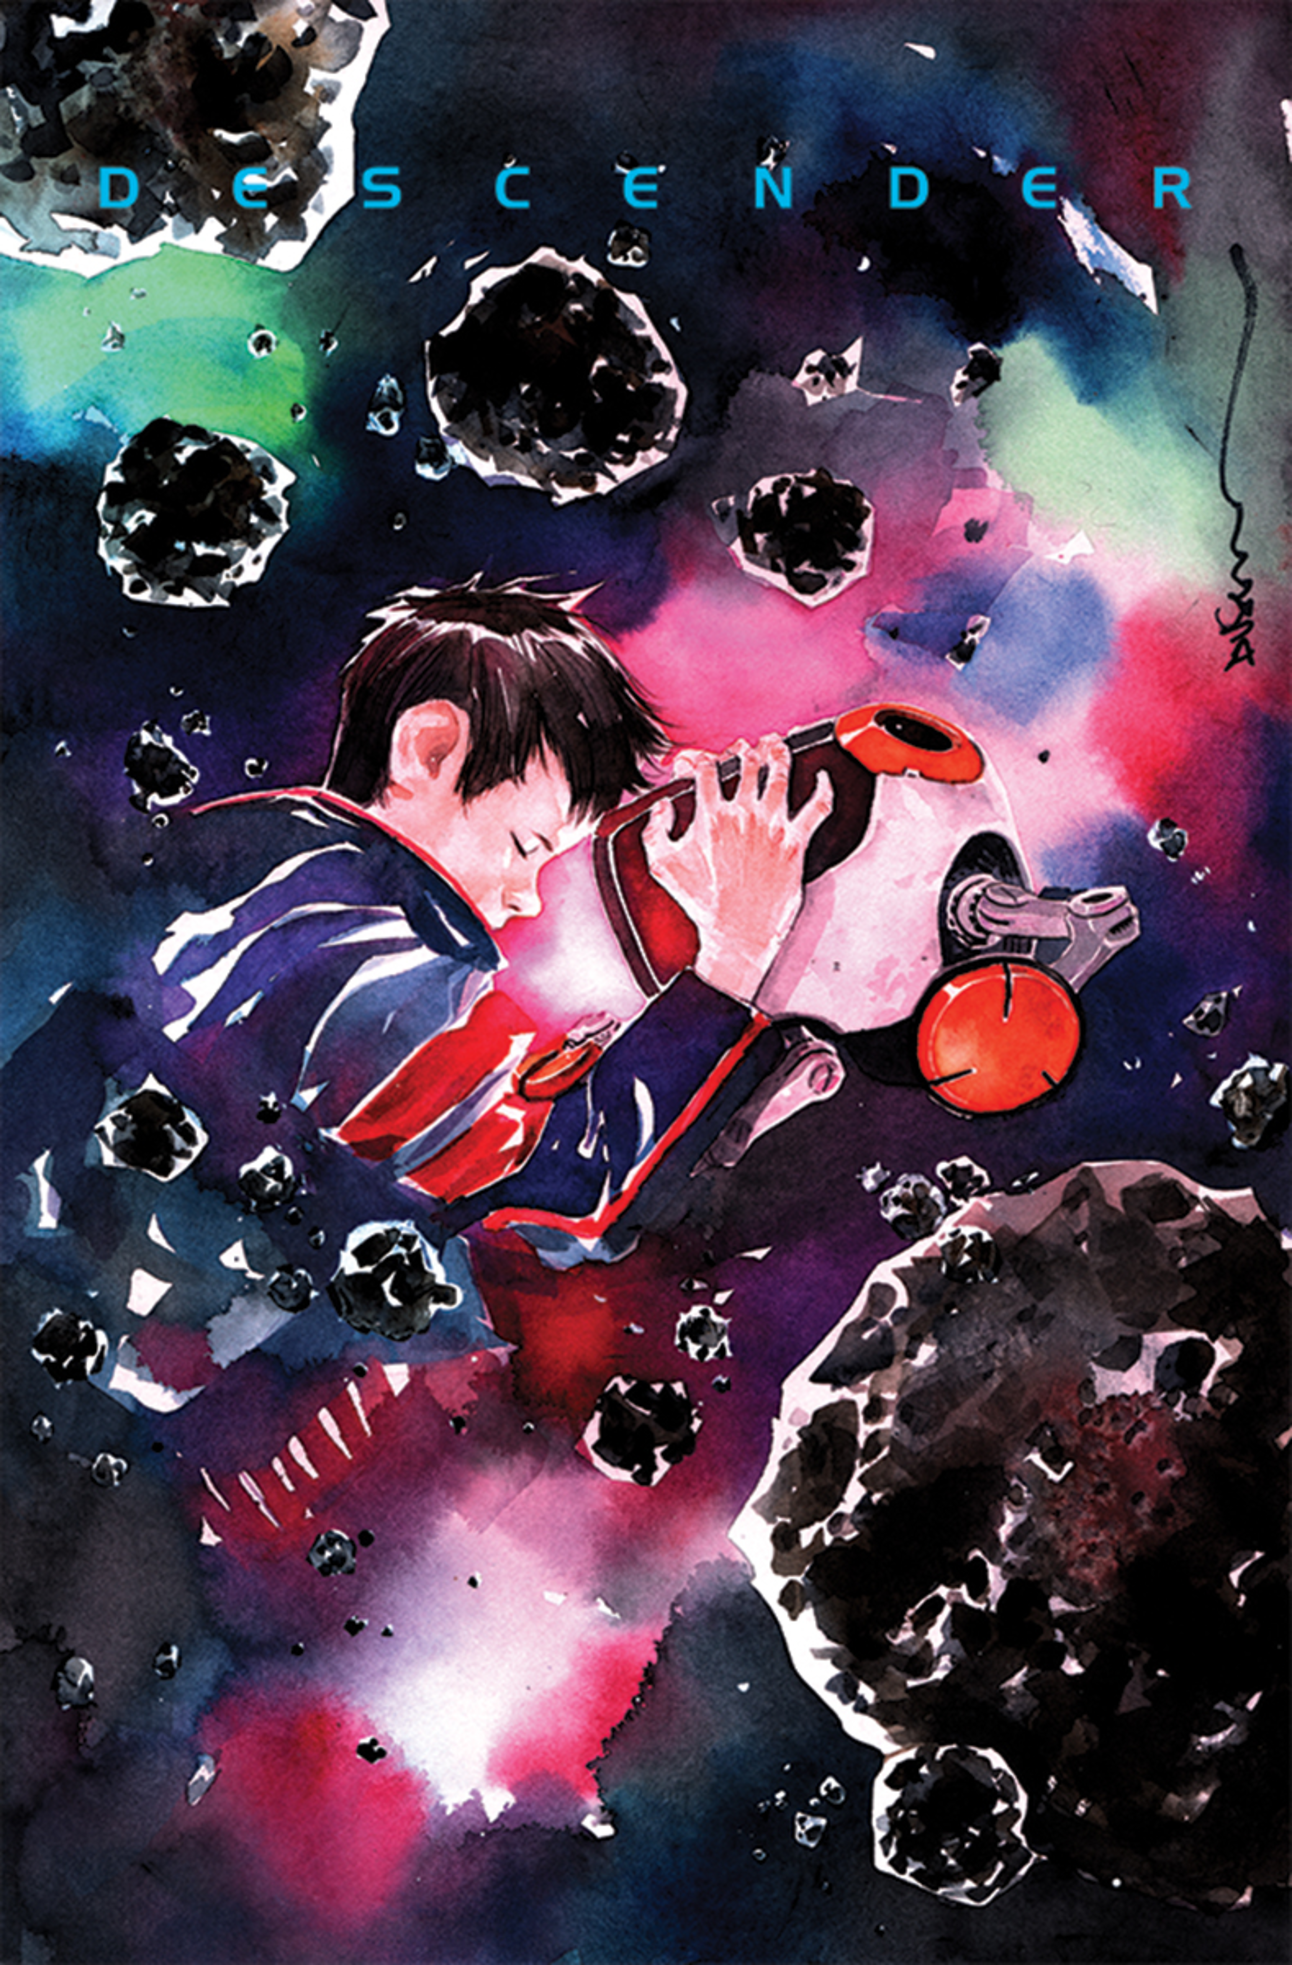 descender_25.png